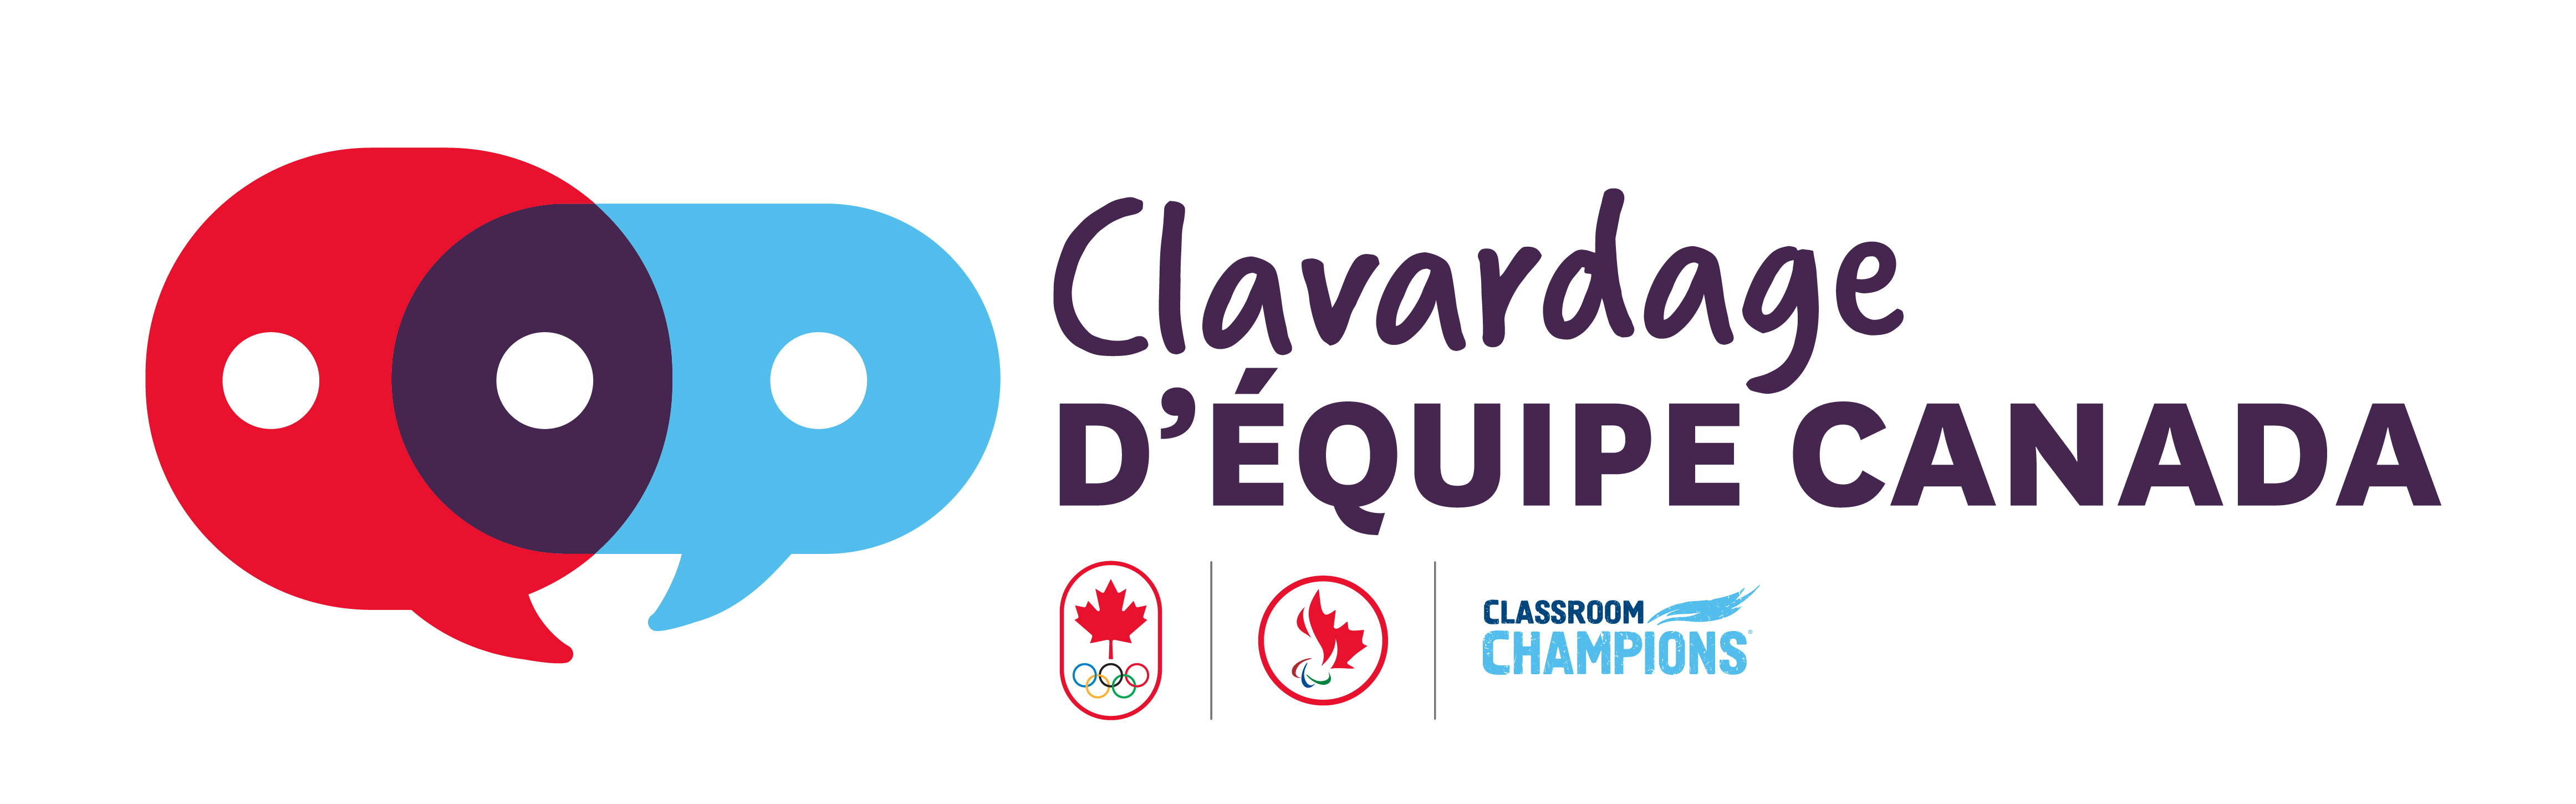 Team Canada Champion Chats logo with two conversation bubbles with the COC, CPC, and Classroom Champions logos